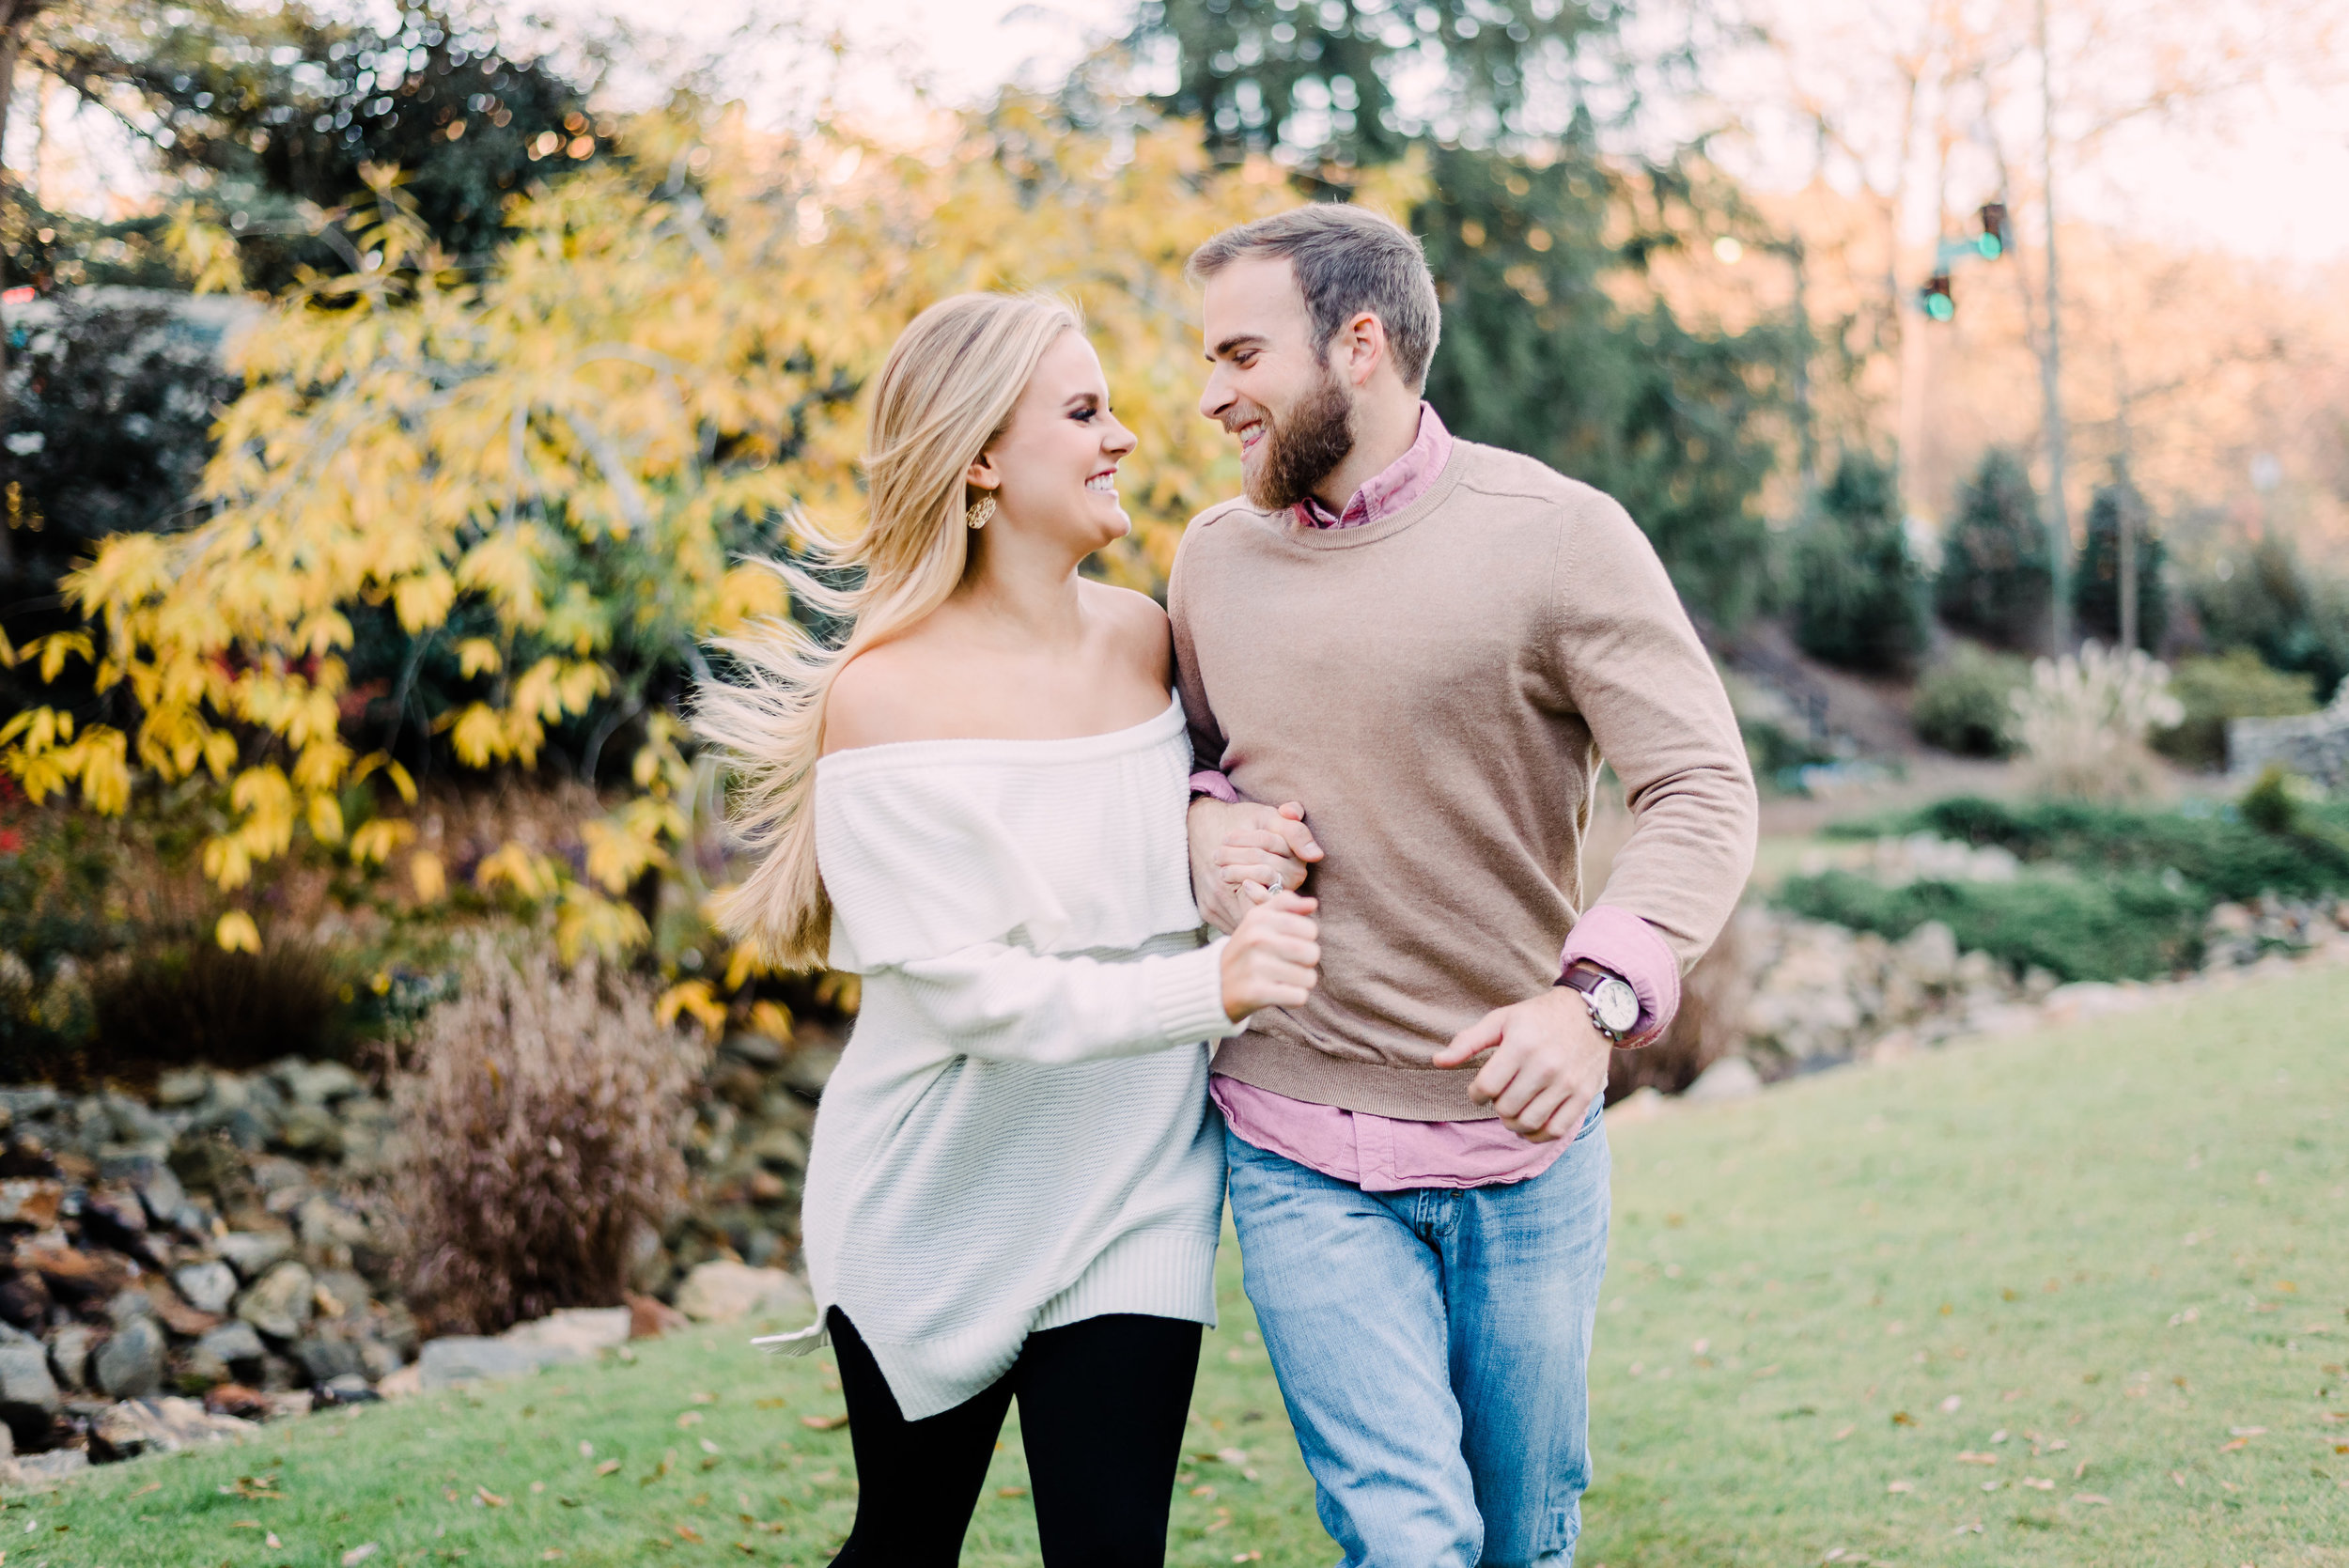 Kirby_Mobley_engaged-97.jpg